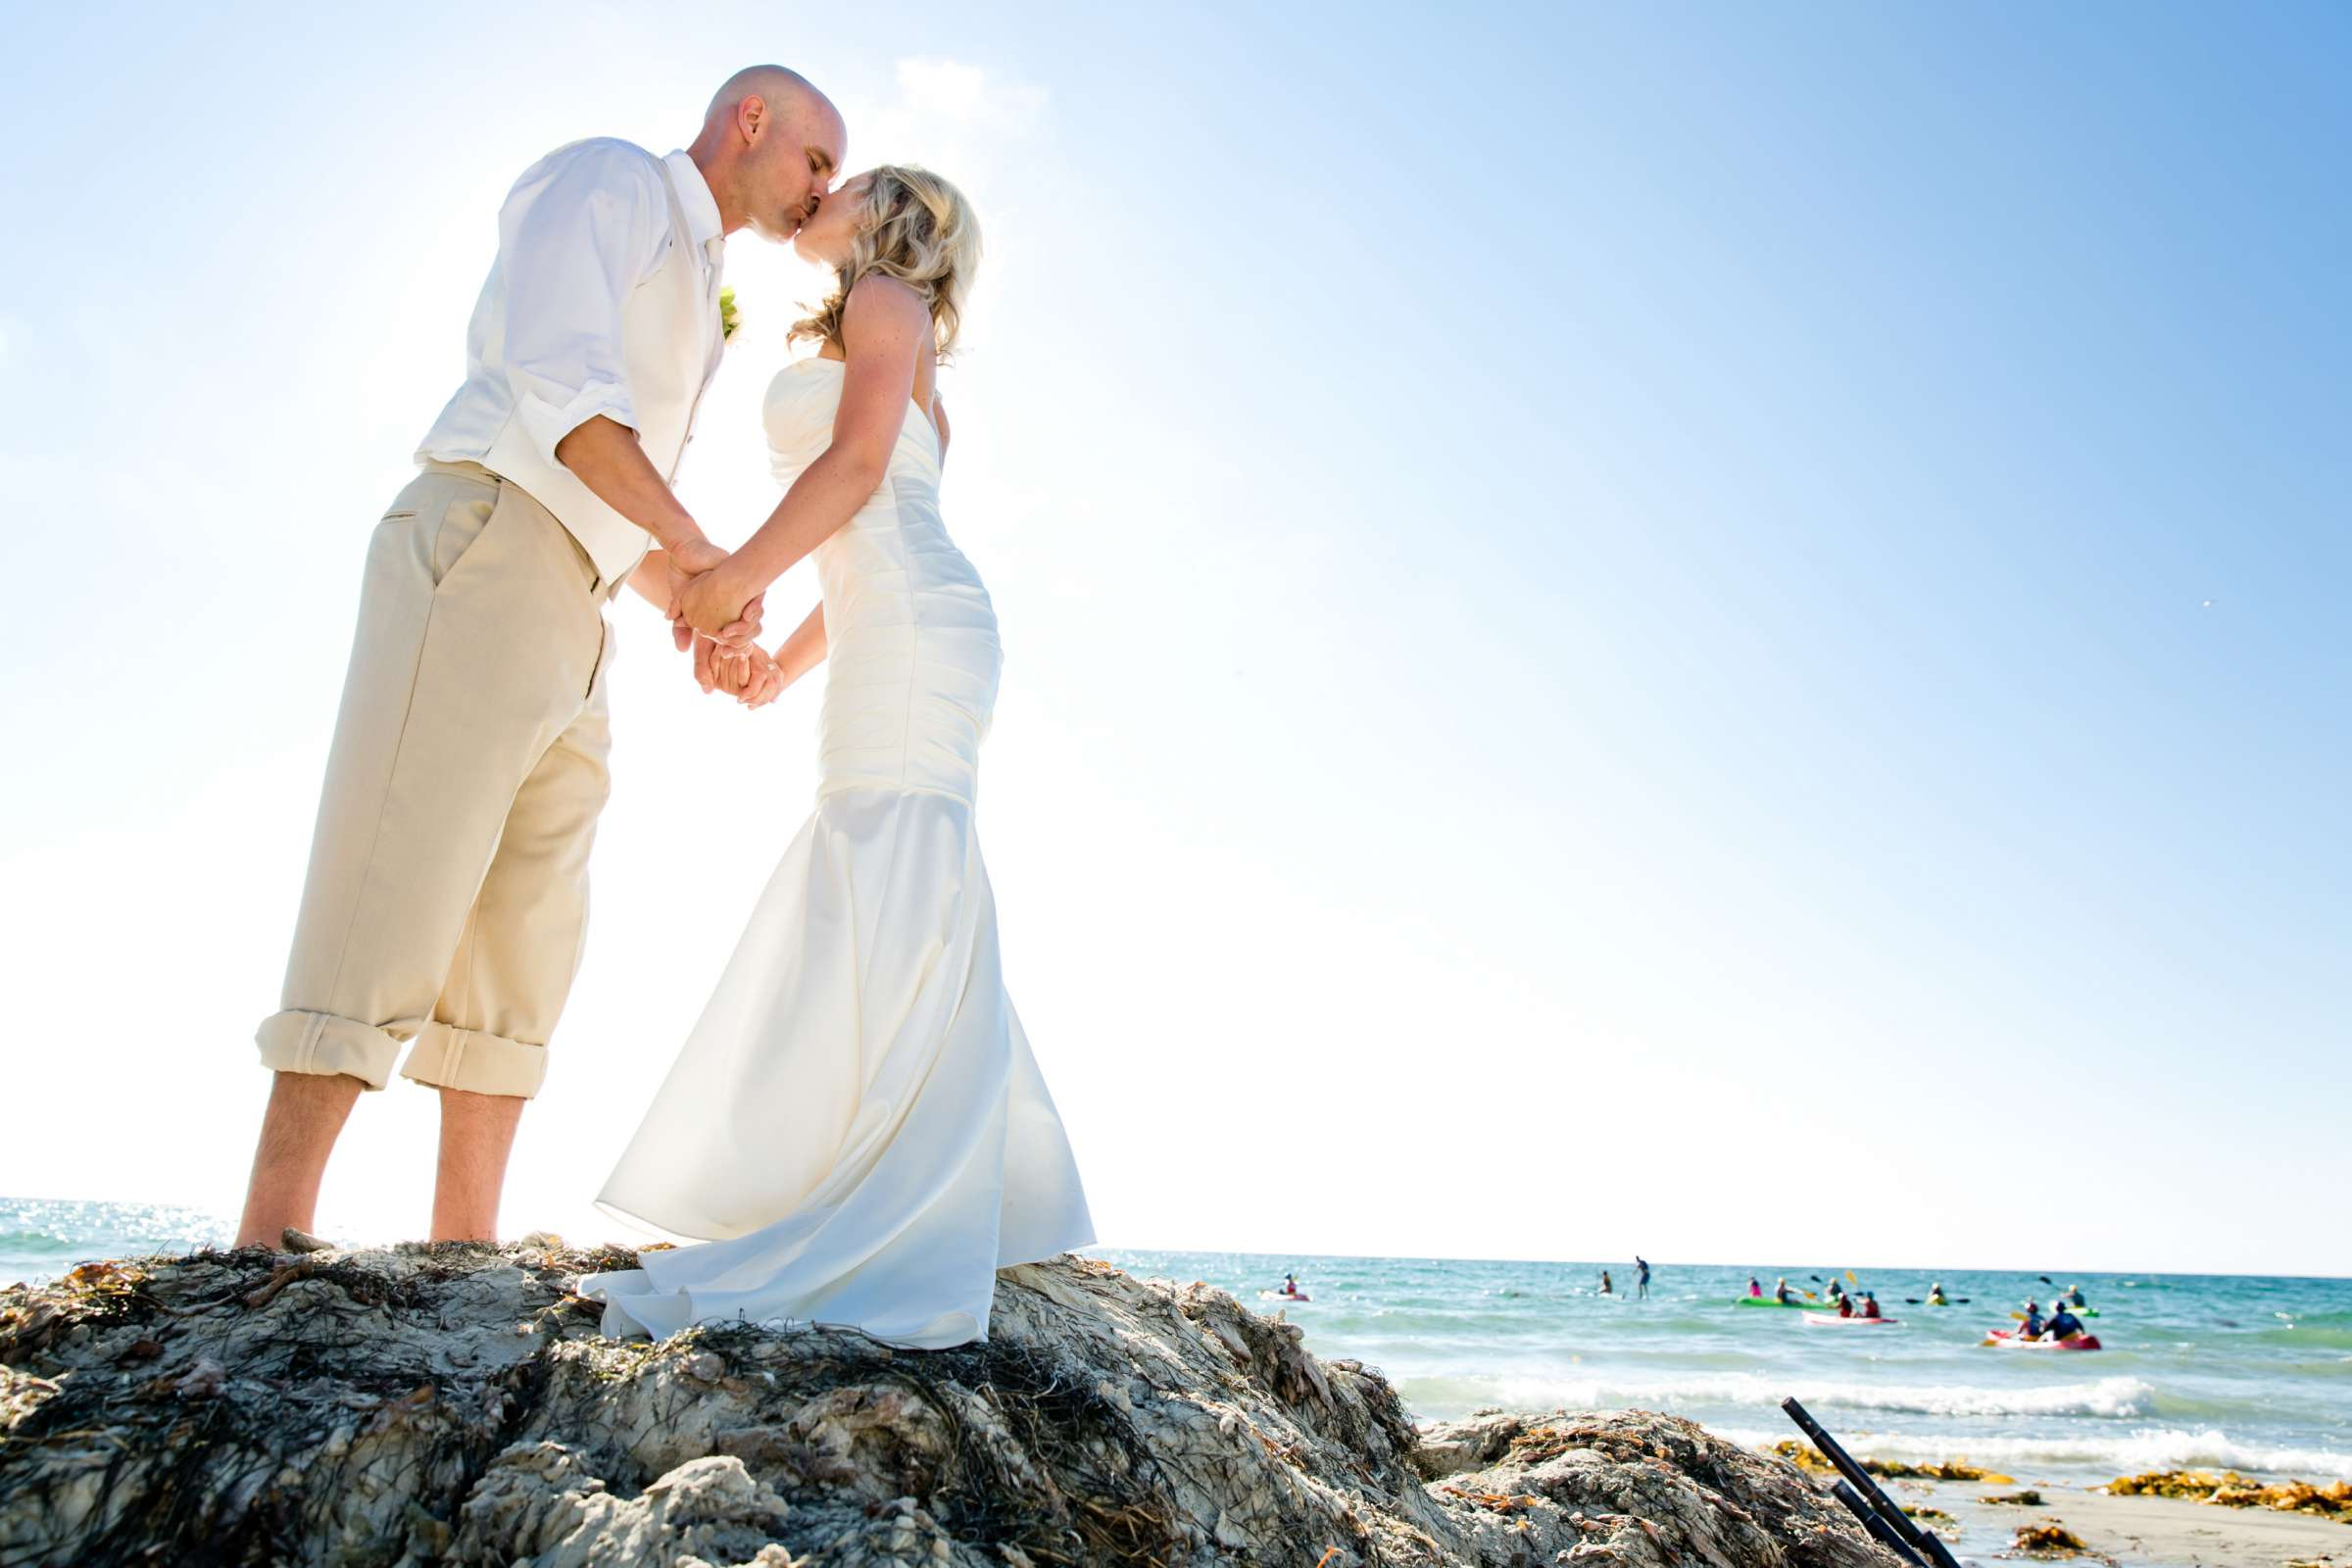 La Jolla Shores Hotel Wedding coordinated by I Do Weddings, Stefanie and Craig Wedding Photo #373282 by True Photography